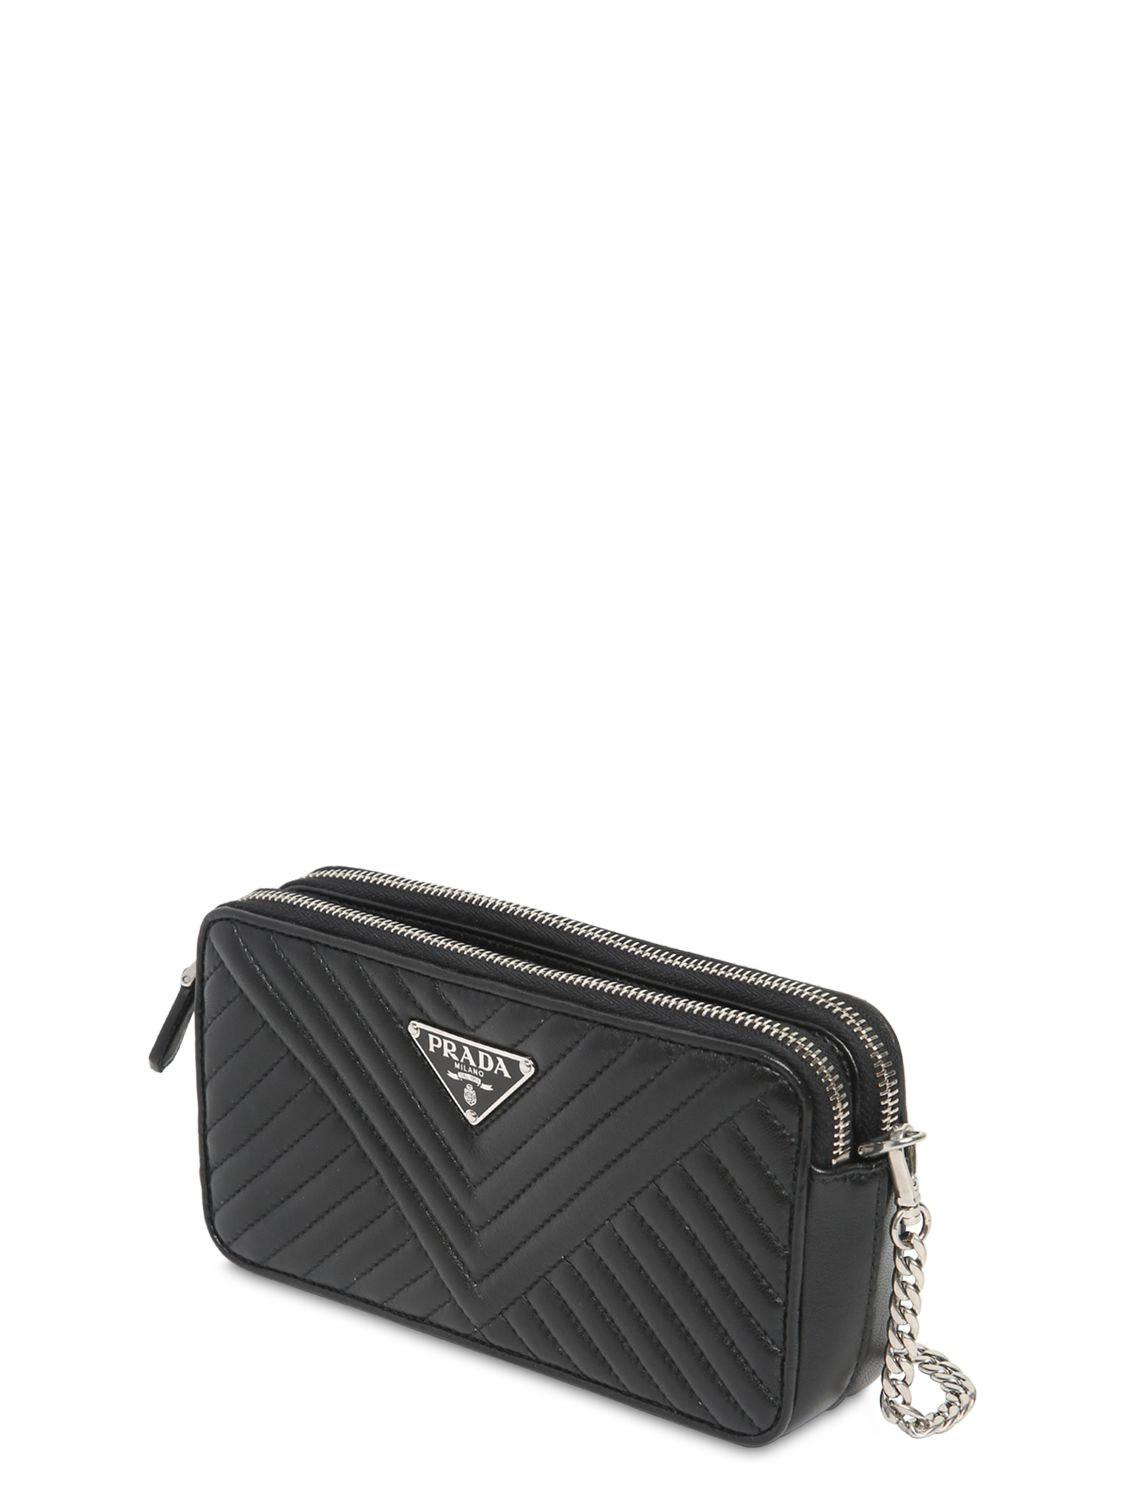 68e5a04bd178 Prada Quilted Nappa Leather Shoulder Bag in Black - Lyst